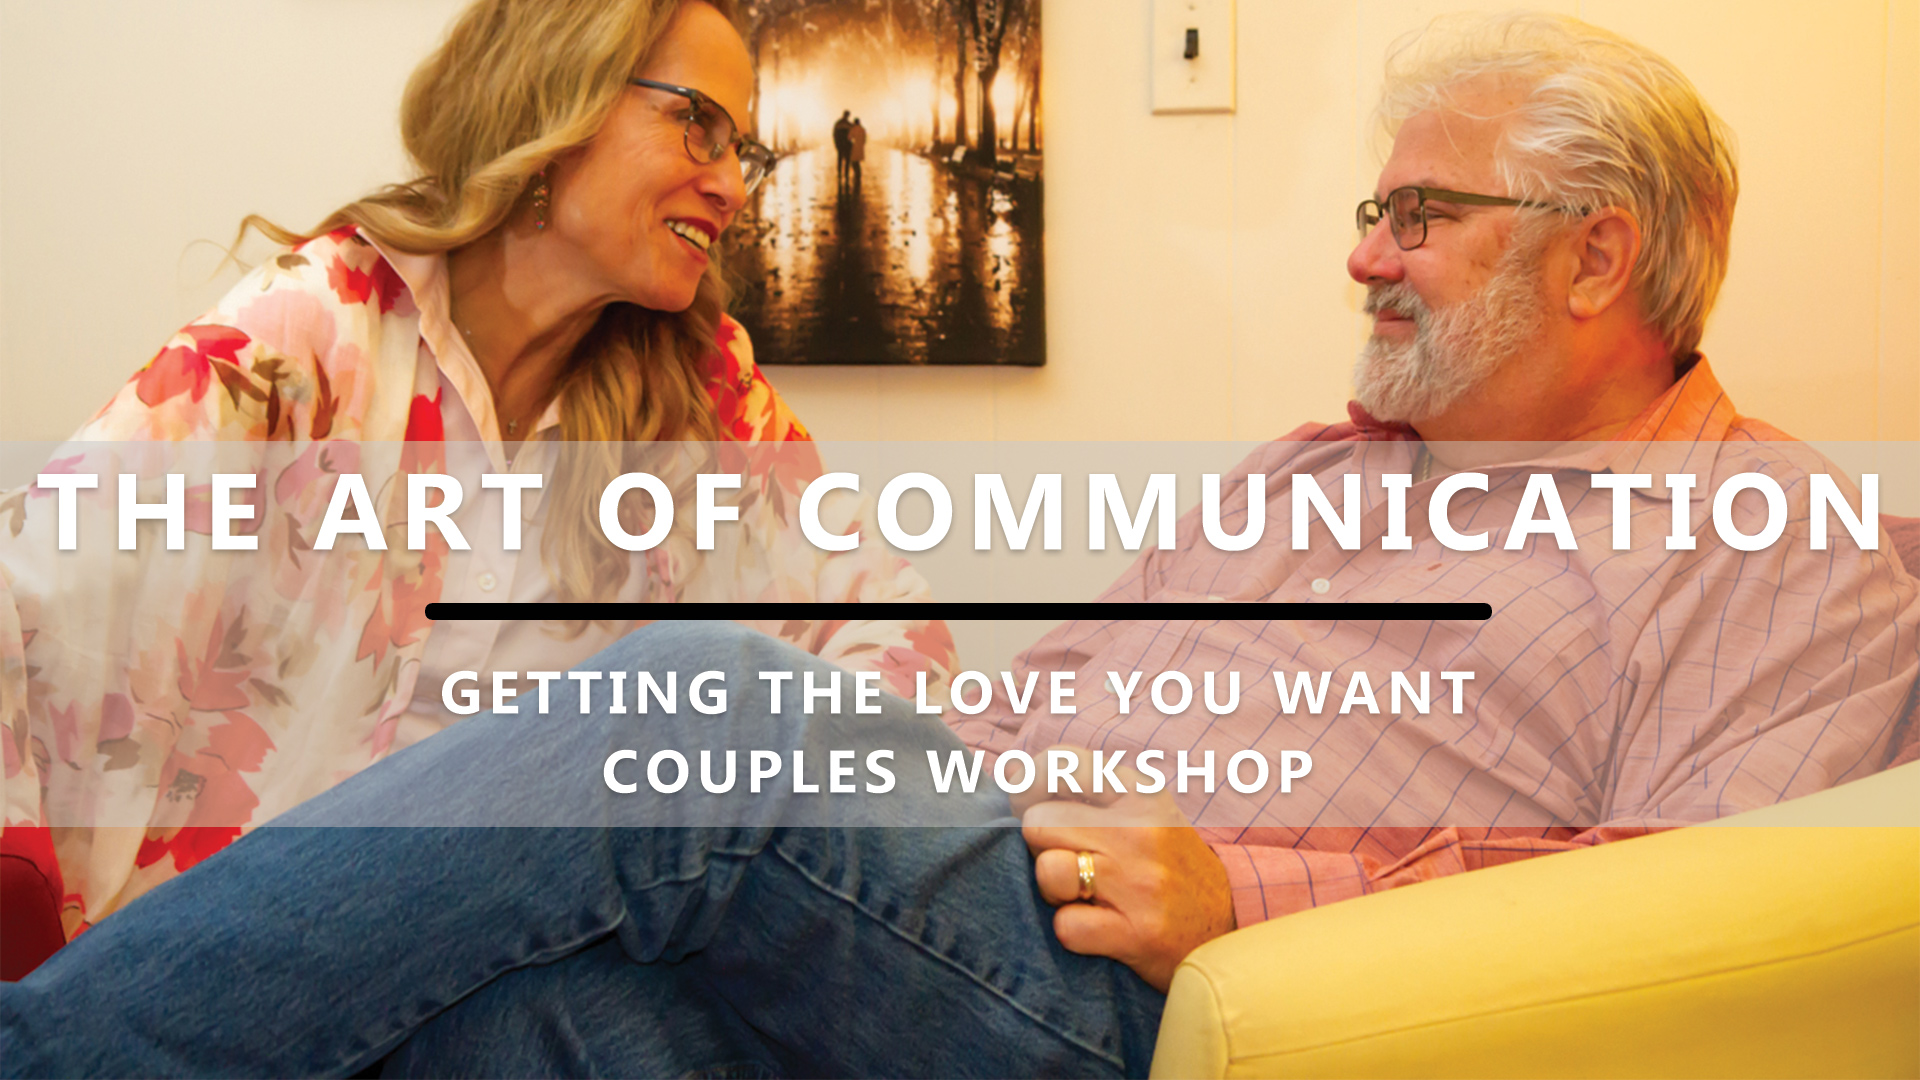 Getting The Love You Want Workshop - The Art of Communication